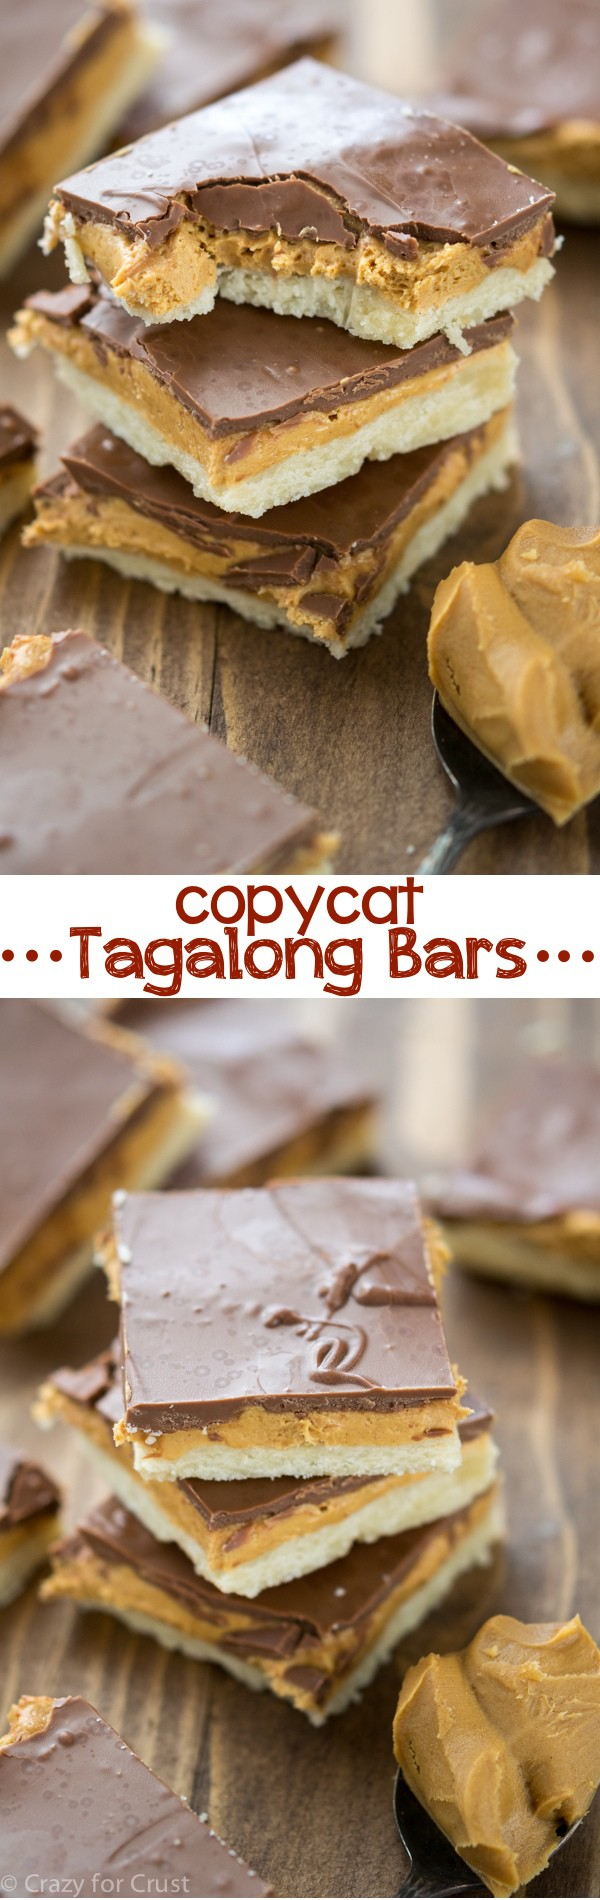 Homemade Tagalong Bars - a copycat of the girl scout cookie! Shortbread, peanut butter, and chocolate in bar cookie form!